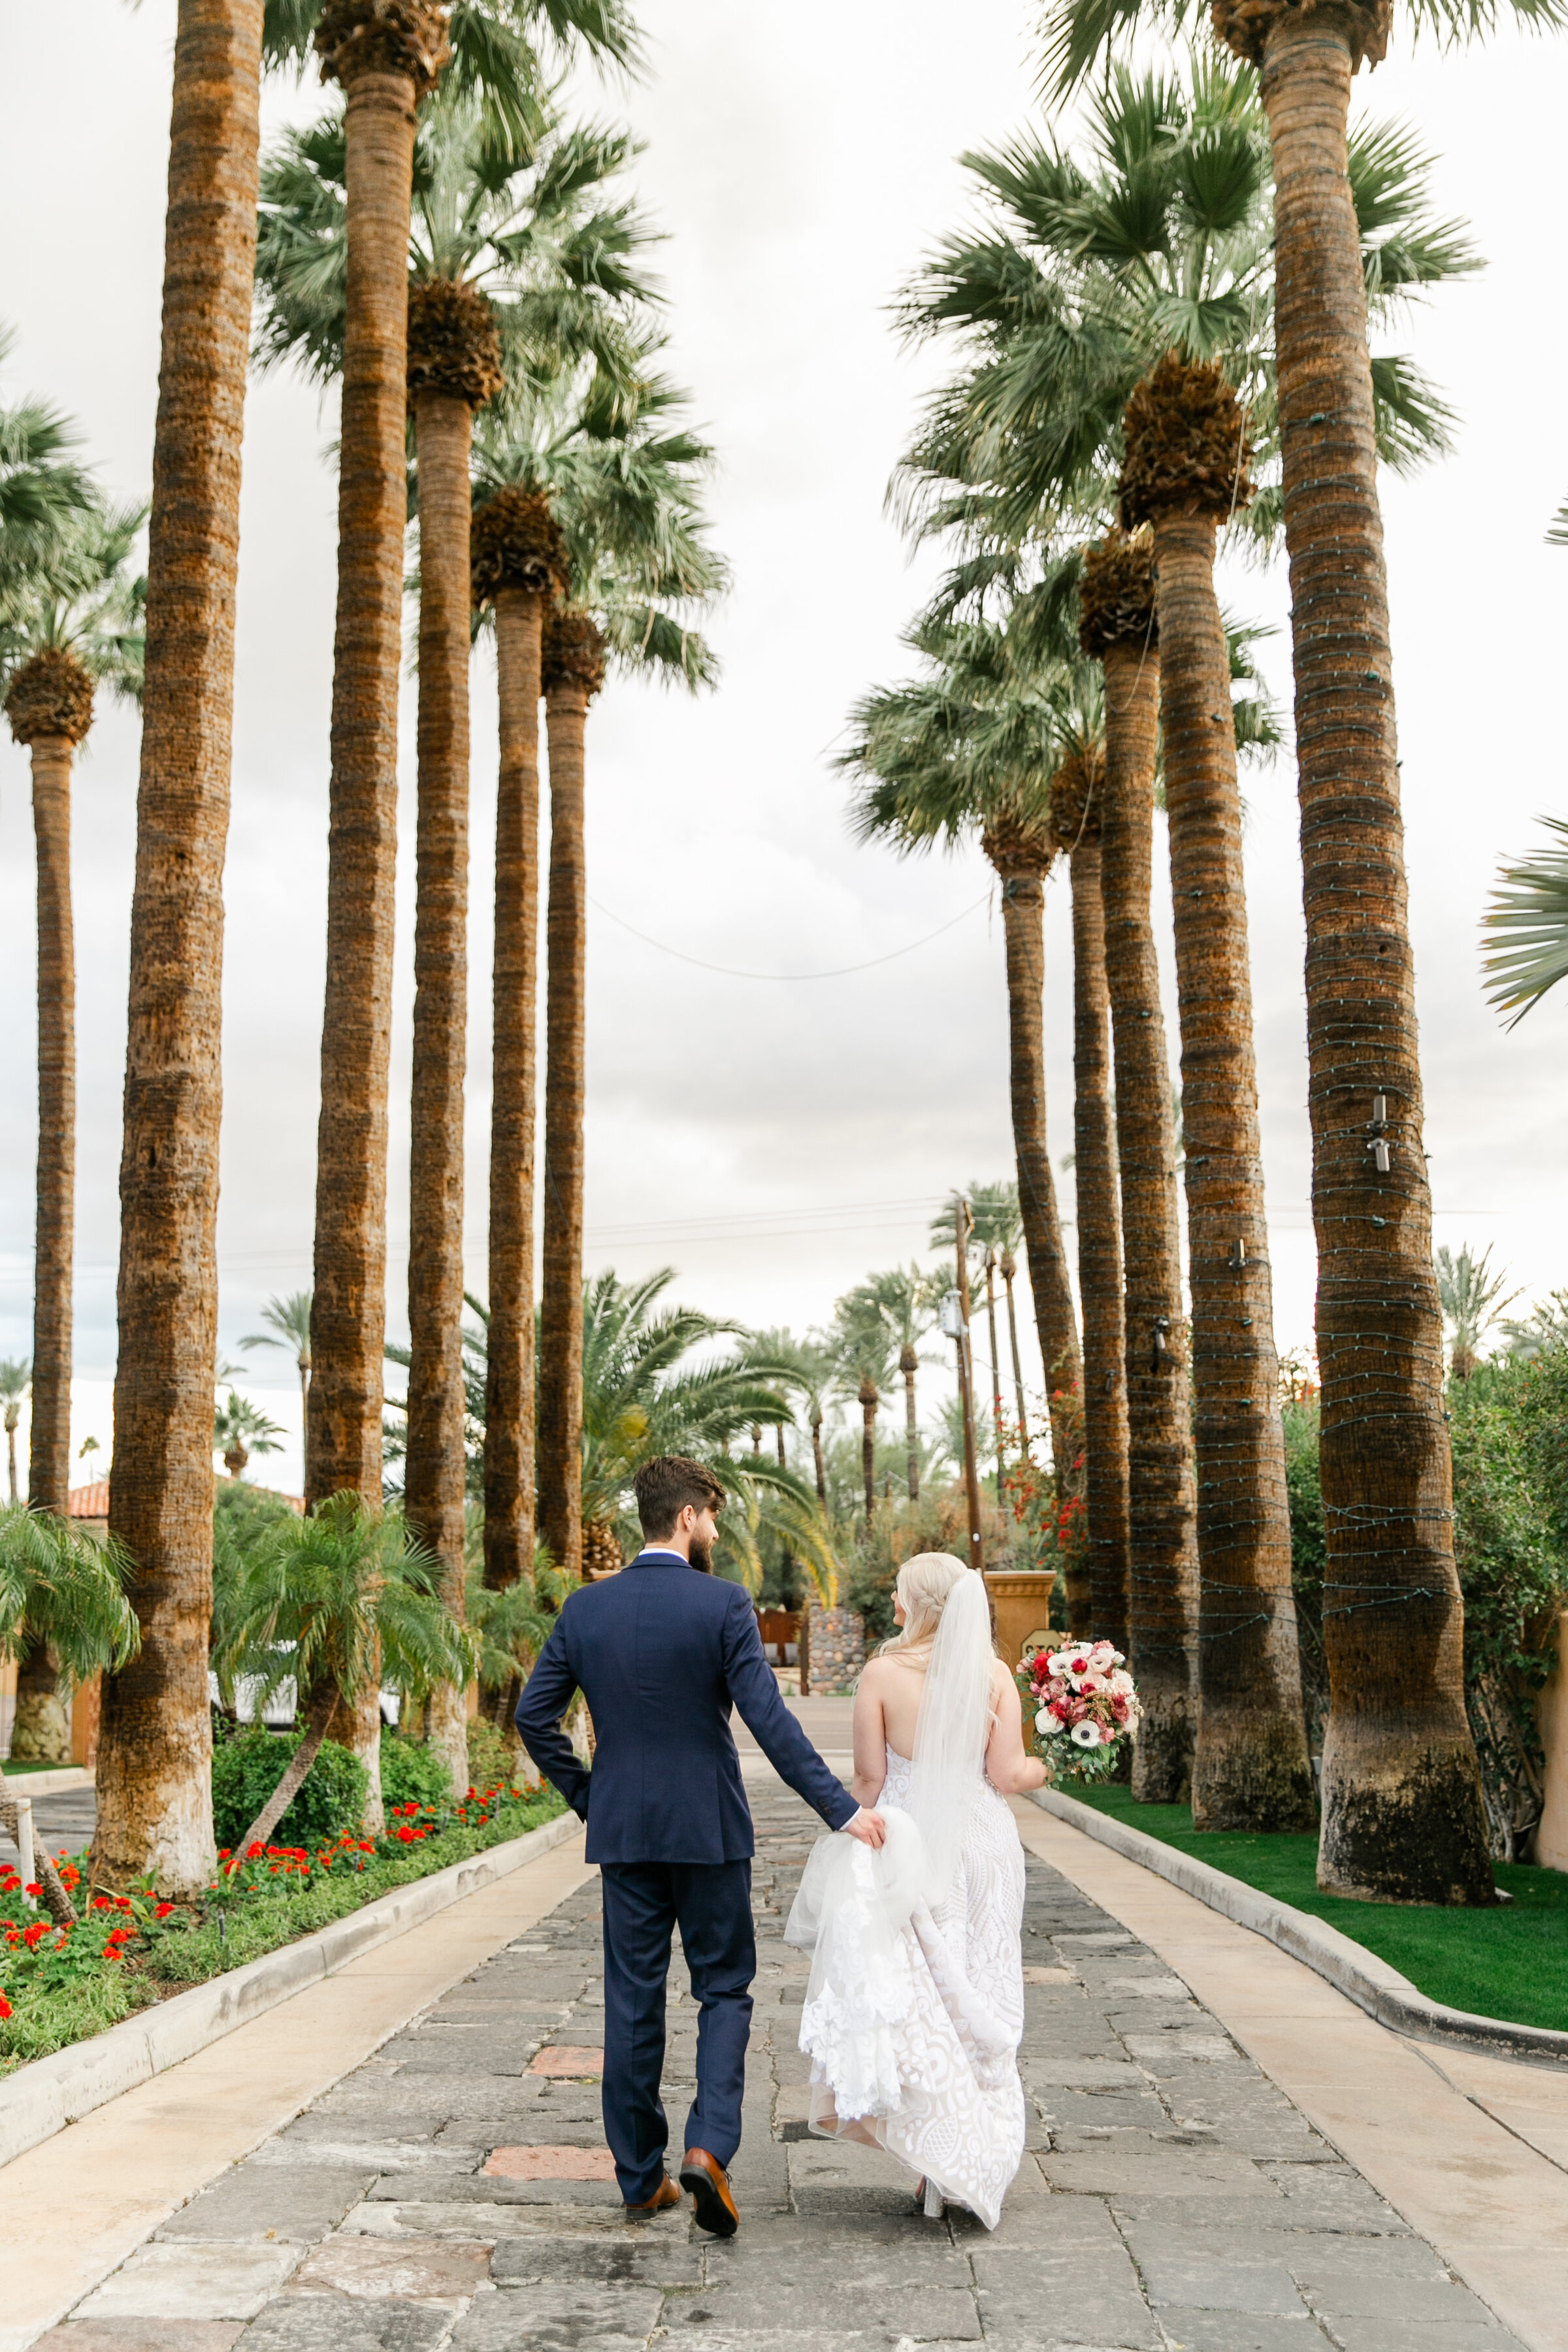 Karlie Colleen Photography - The Royal Palms Wedding - Some Like It Classic - Alex & Sam-571